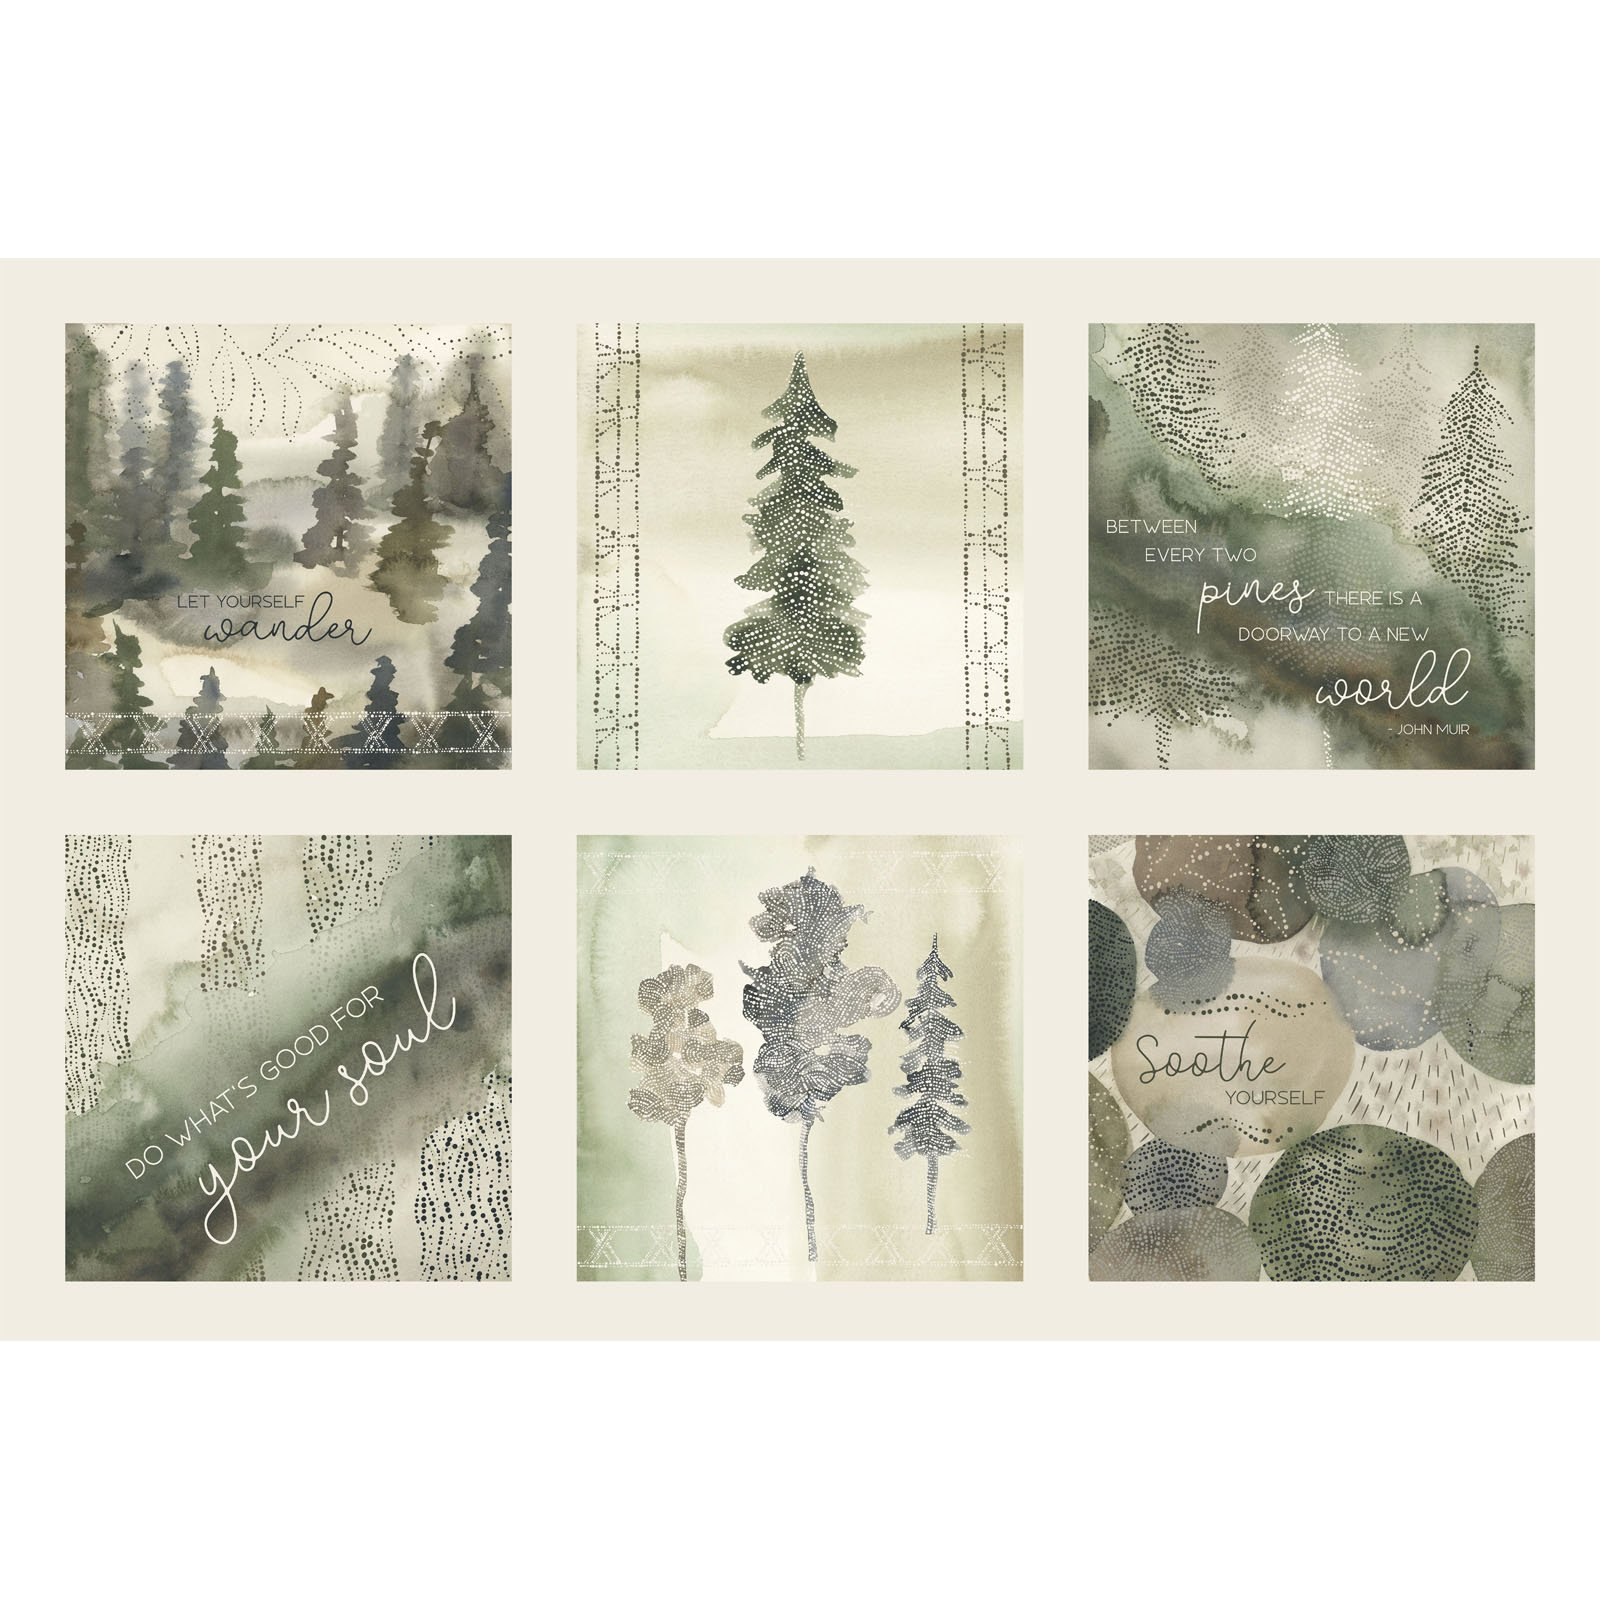 FRET-4334 PA - FOREST RETREAT BY JETTY HOME FOREST 10YDS/13PNLS